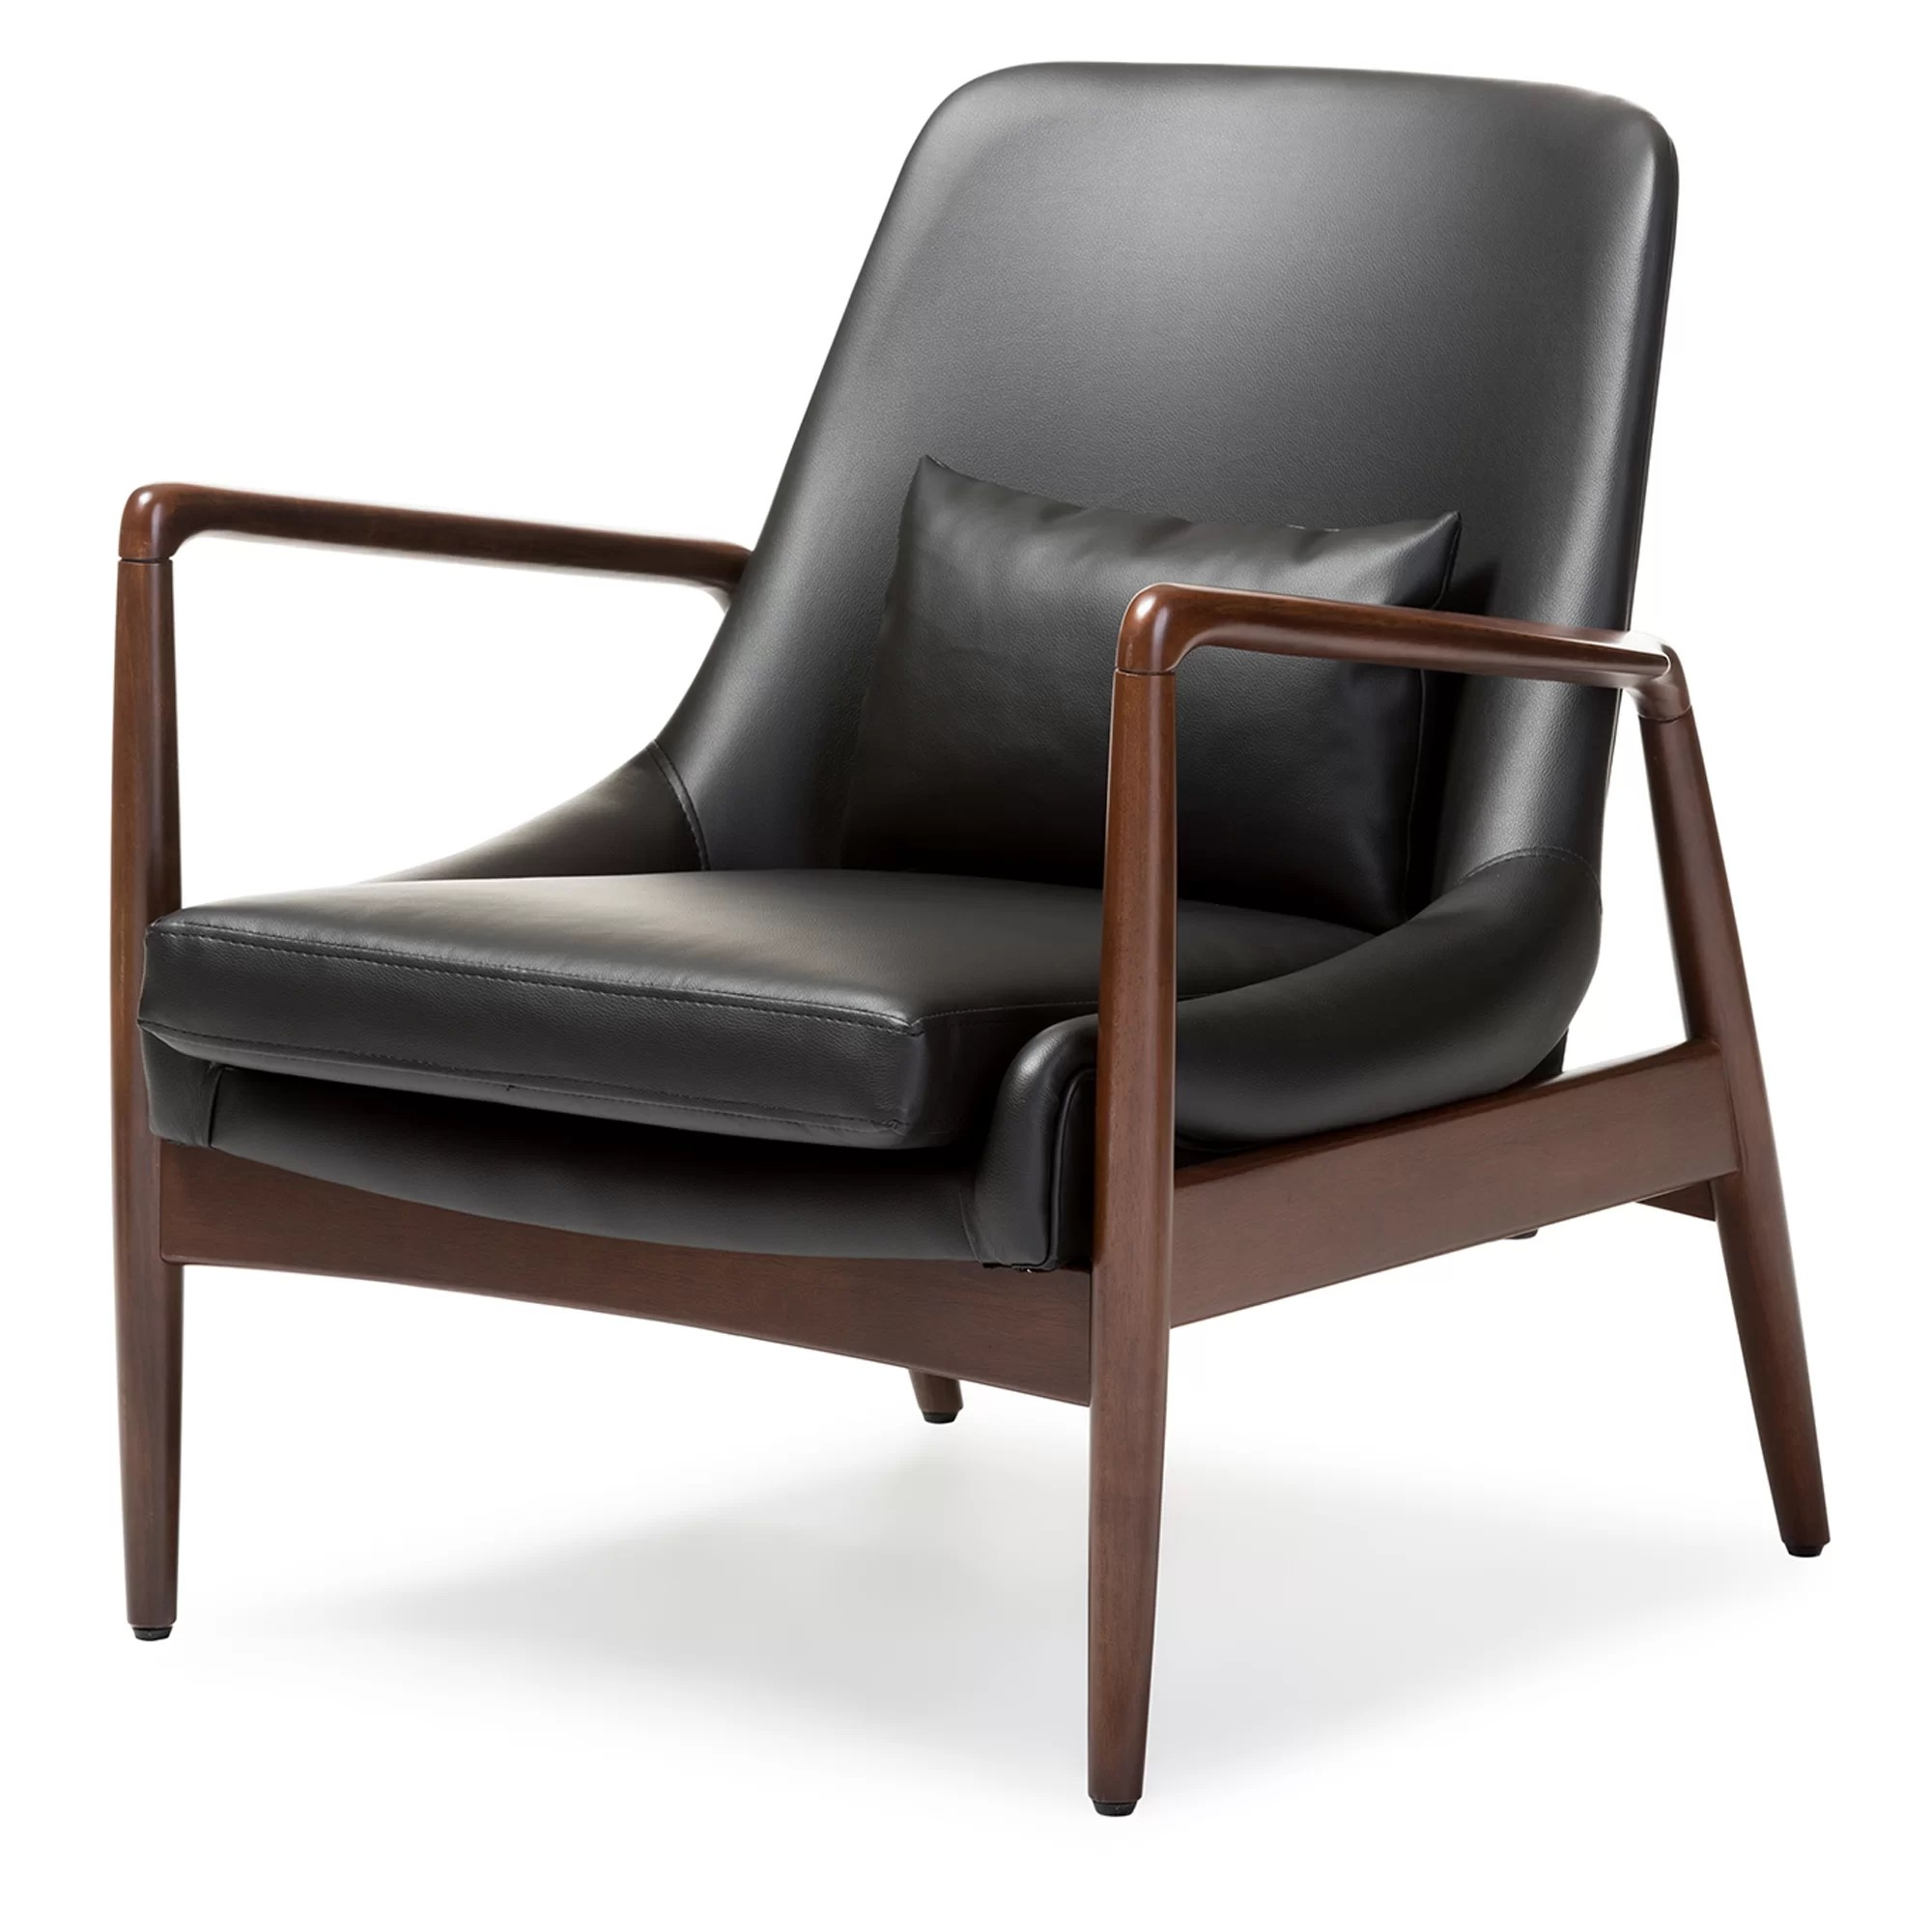 baxton studio modern leather accent chair ikea hanging uk wholesale interiors carter lounge